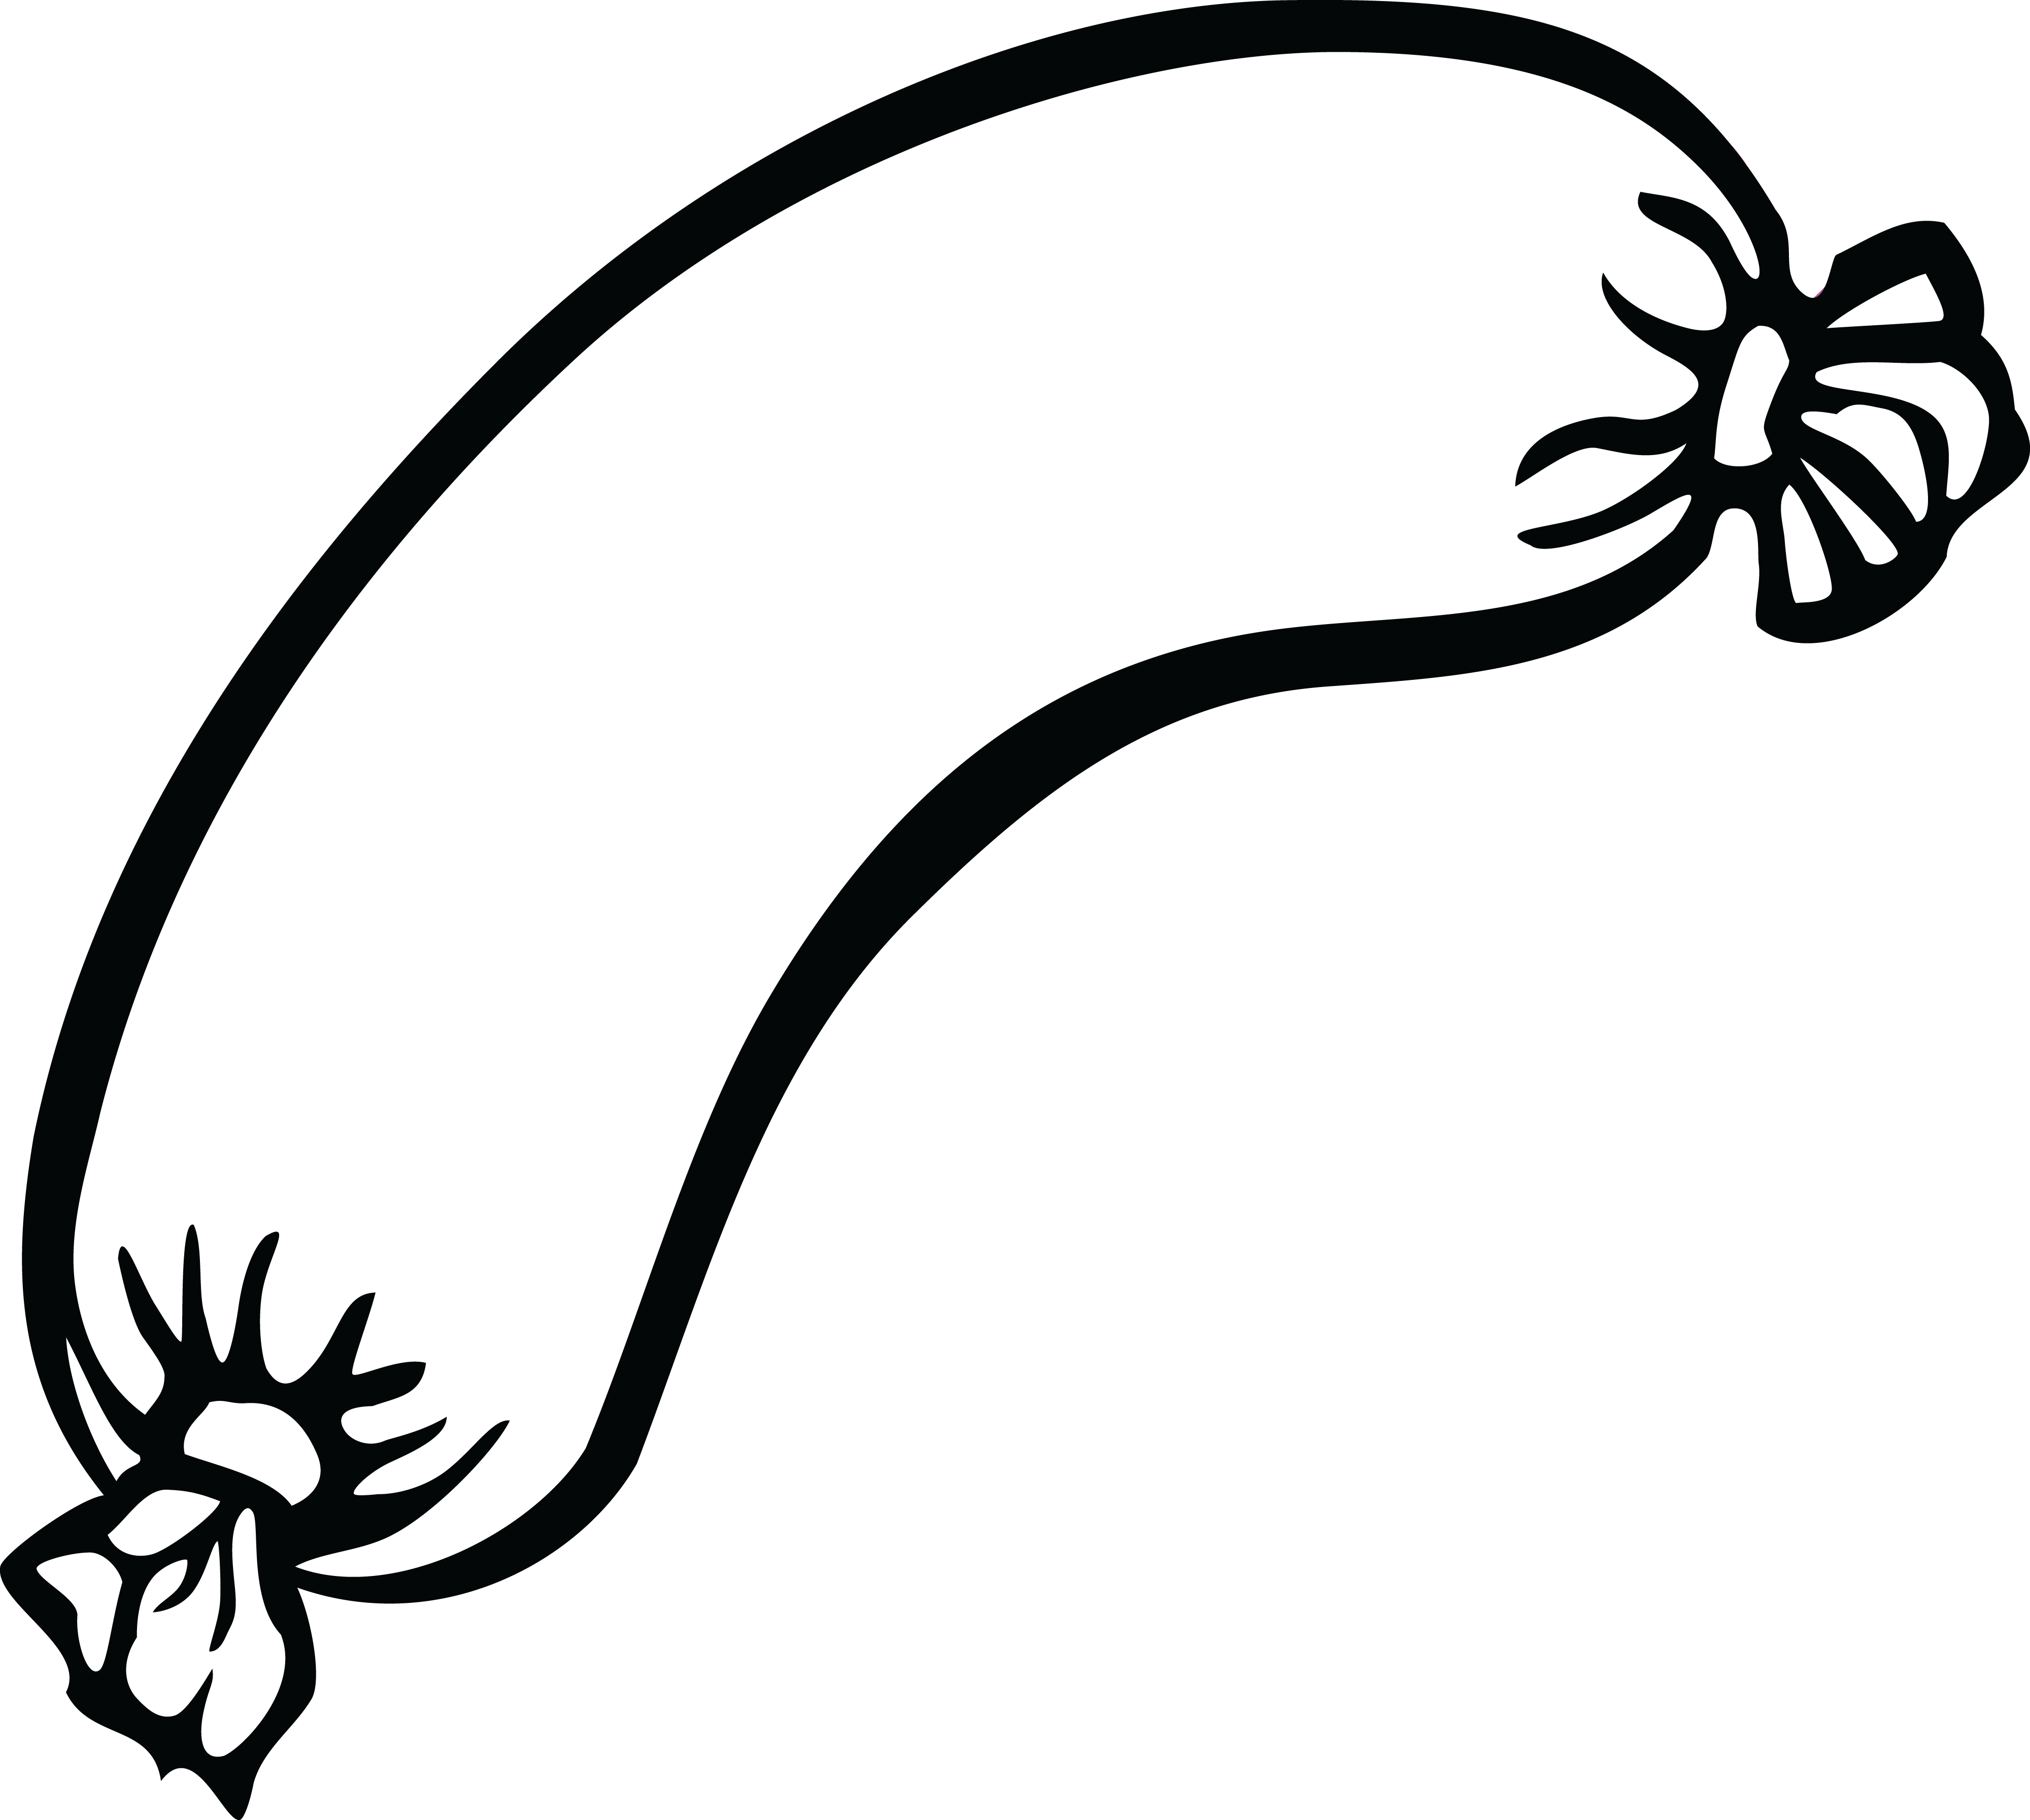 Jpg To Line Drawing : Free clipart of a sausage